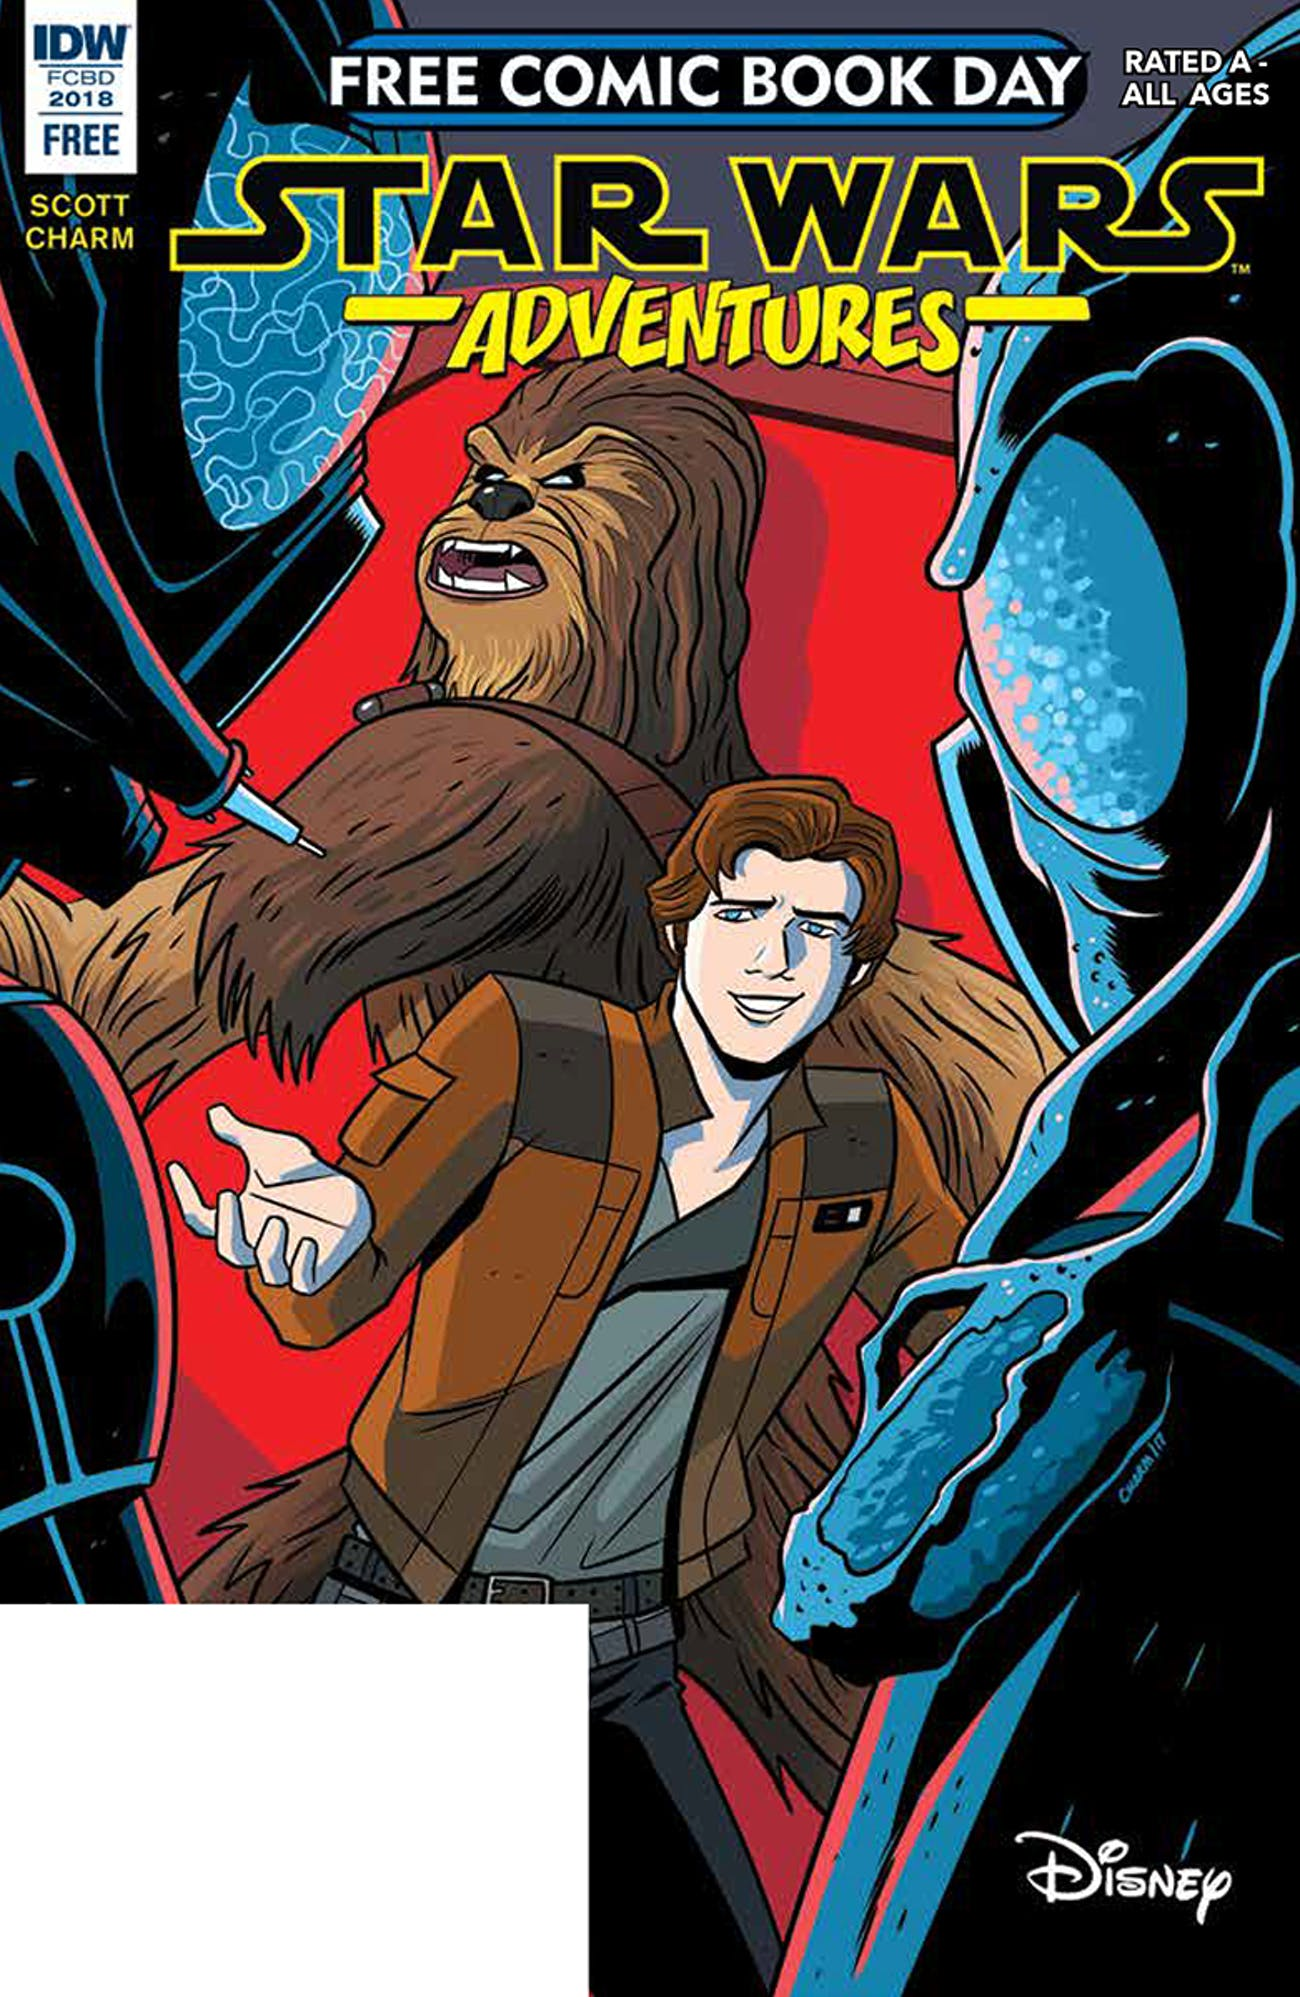 star wars adventure free comic book day